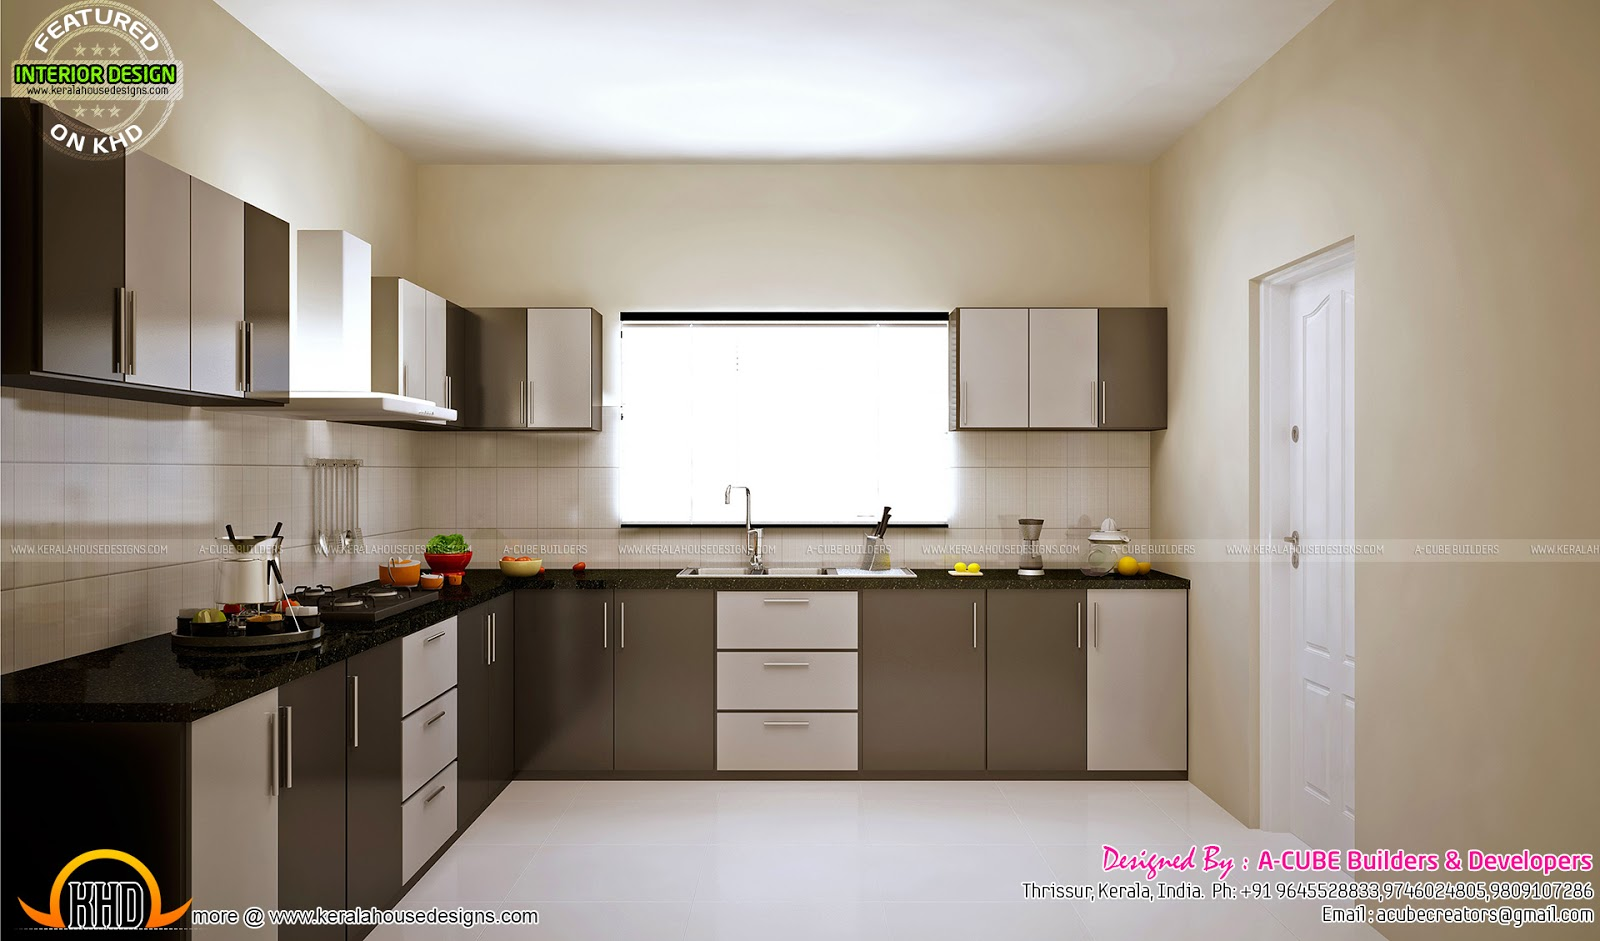 Kitchen And Master Bedroom Designs Kerala Home Design And Floor Plans